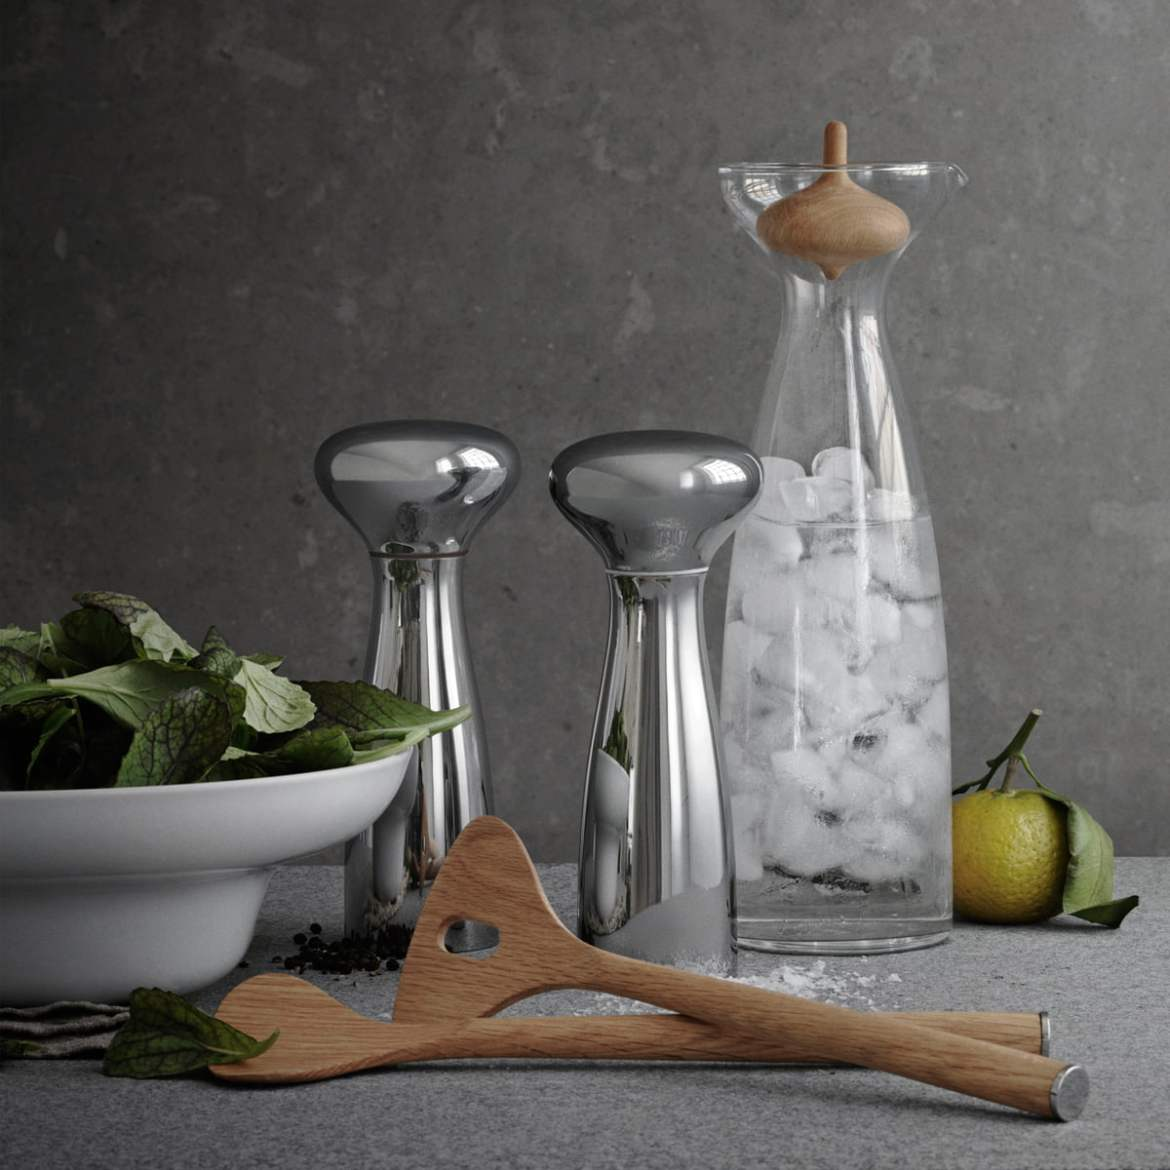 Georg Jensen Alfredo Häberli Vase and Salt and Pepper shakers in stainless steel